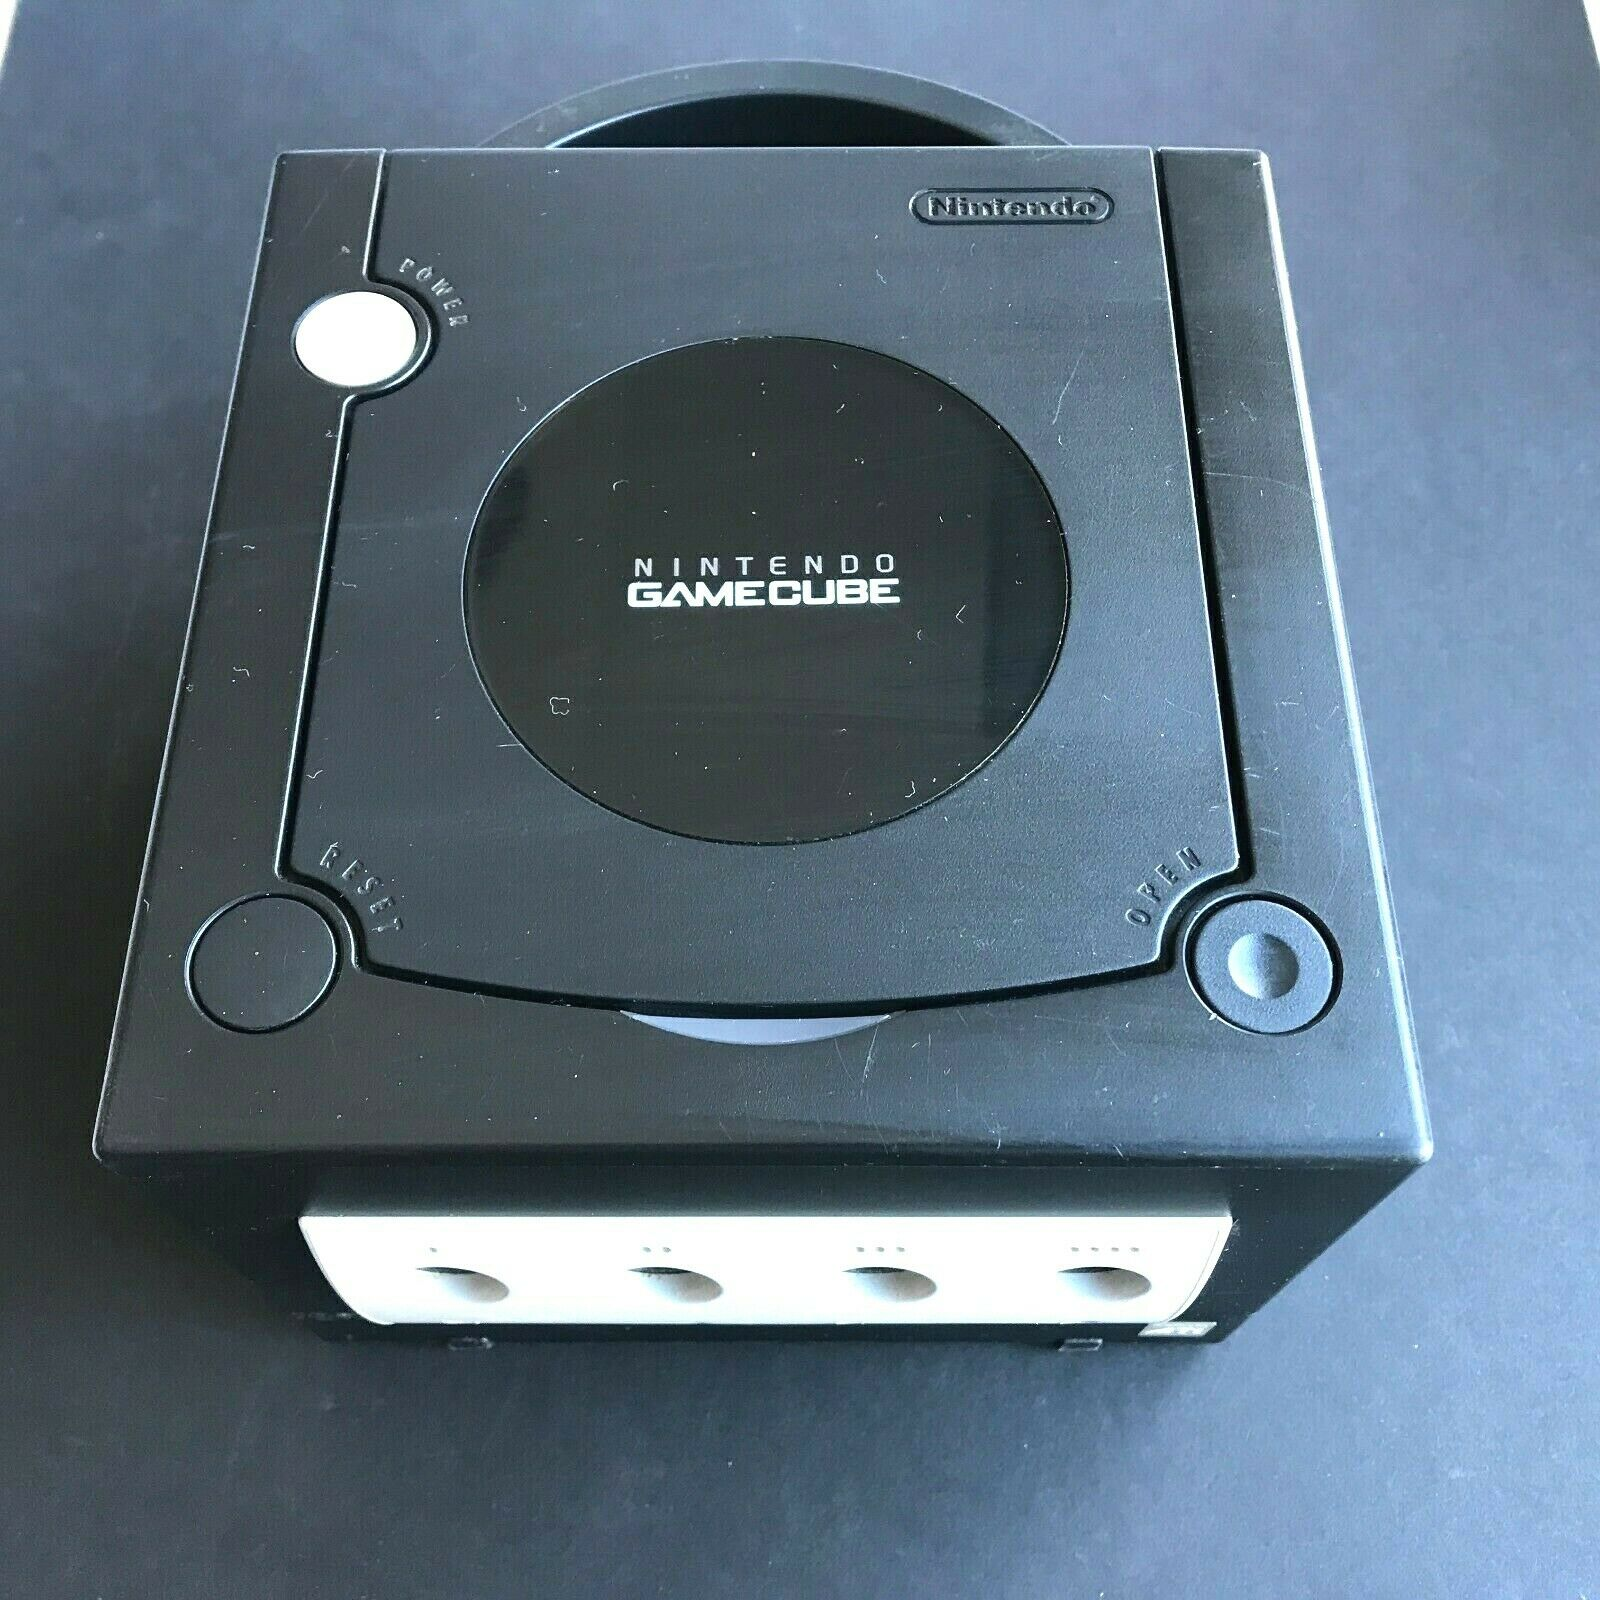 Nintendo Gamecube Console - Black CONSOLE ONLY (TESTED) #30